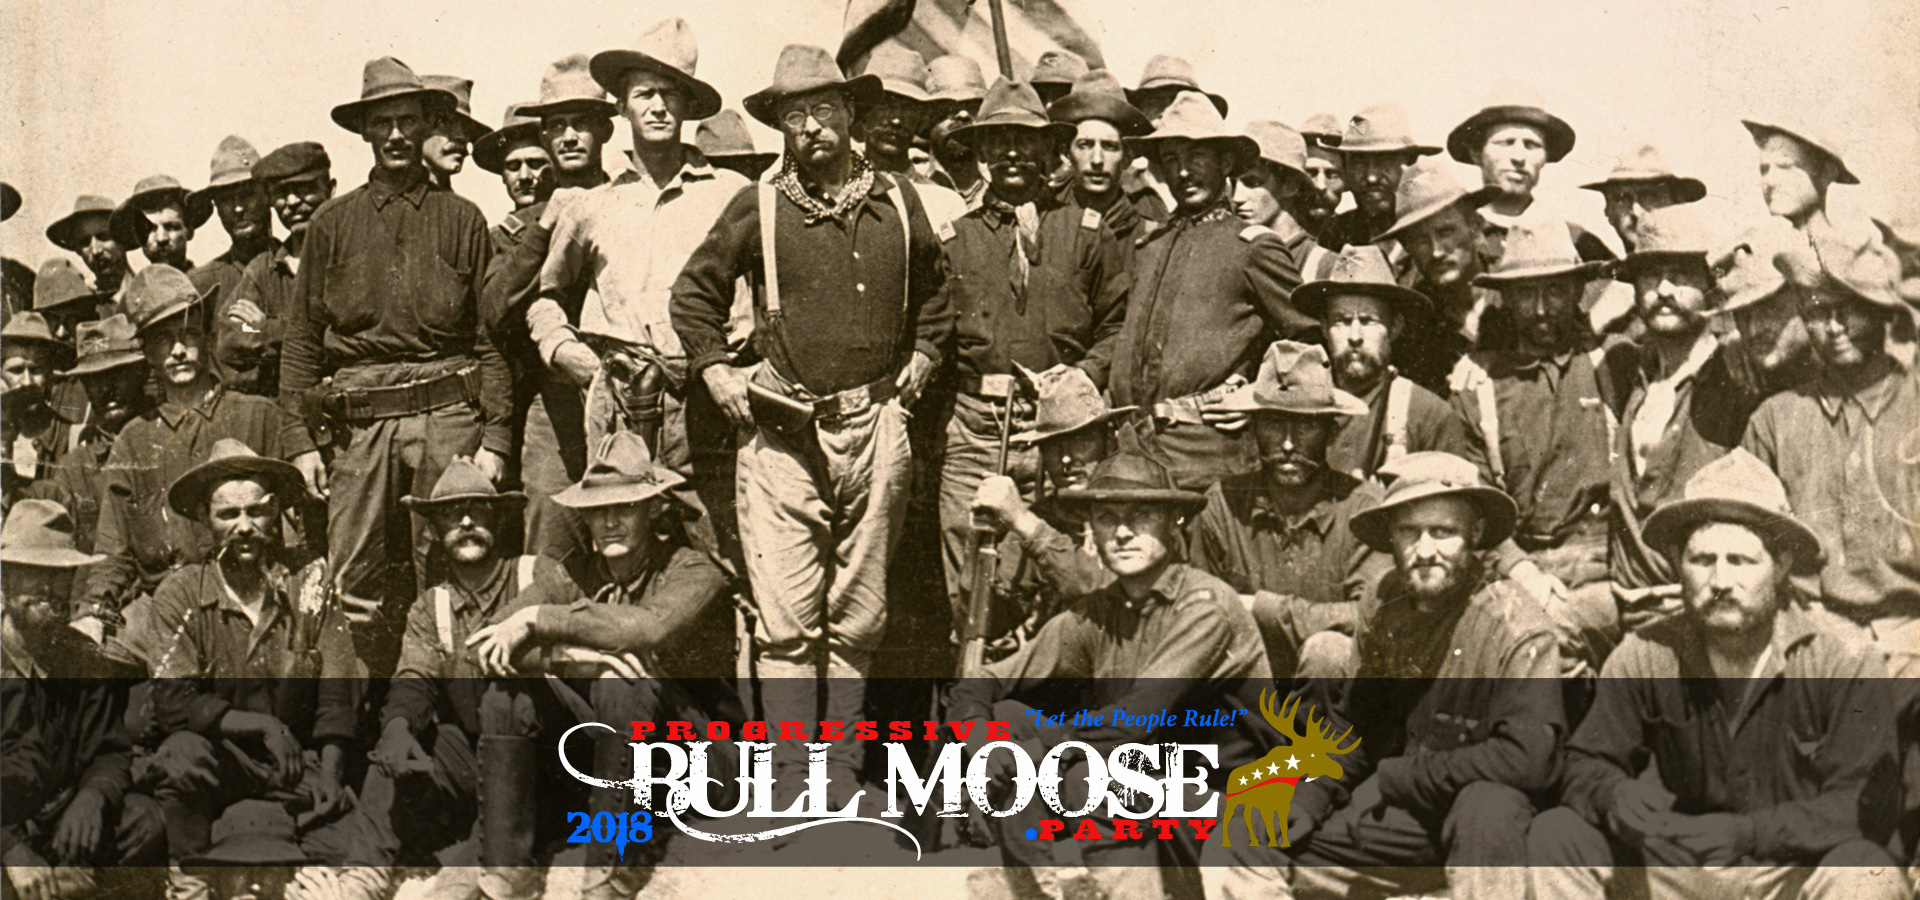 Platform - Progressive Bull Moose Party